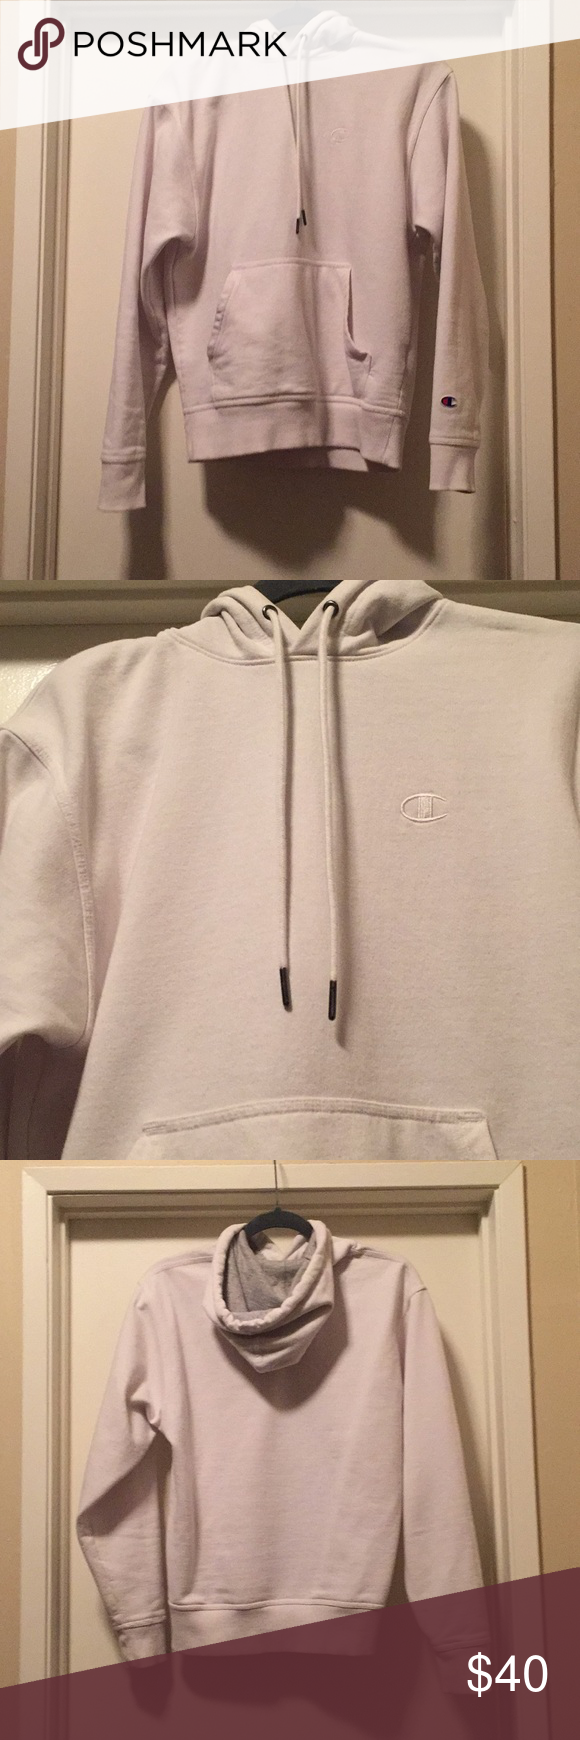 Solid White Champion hoodie No flaws/stains Only worn once and in GREAT condition Champion Sweaters #championhoodie